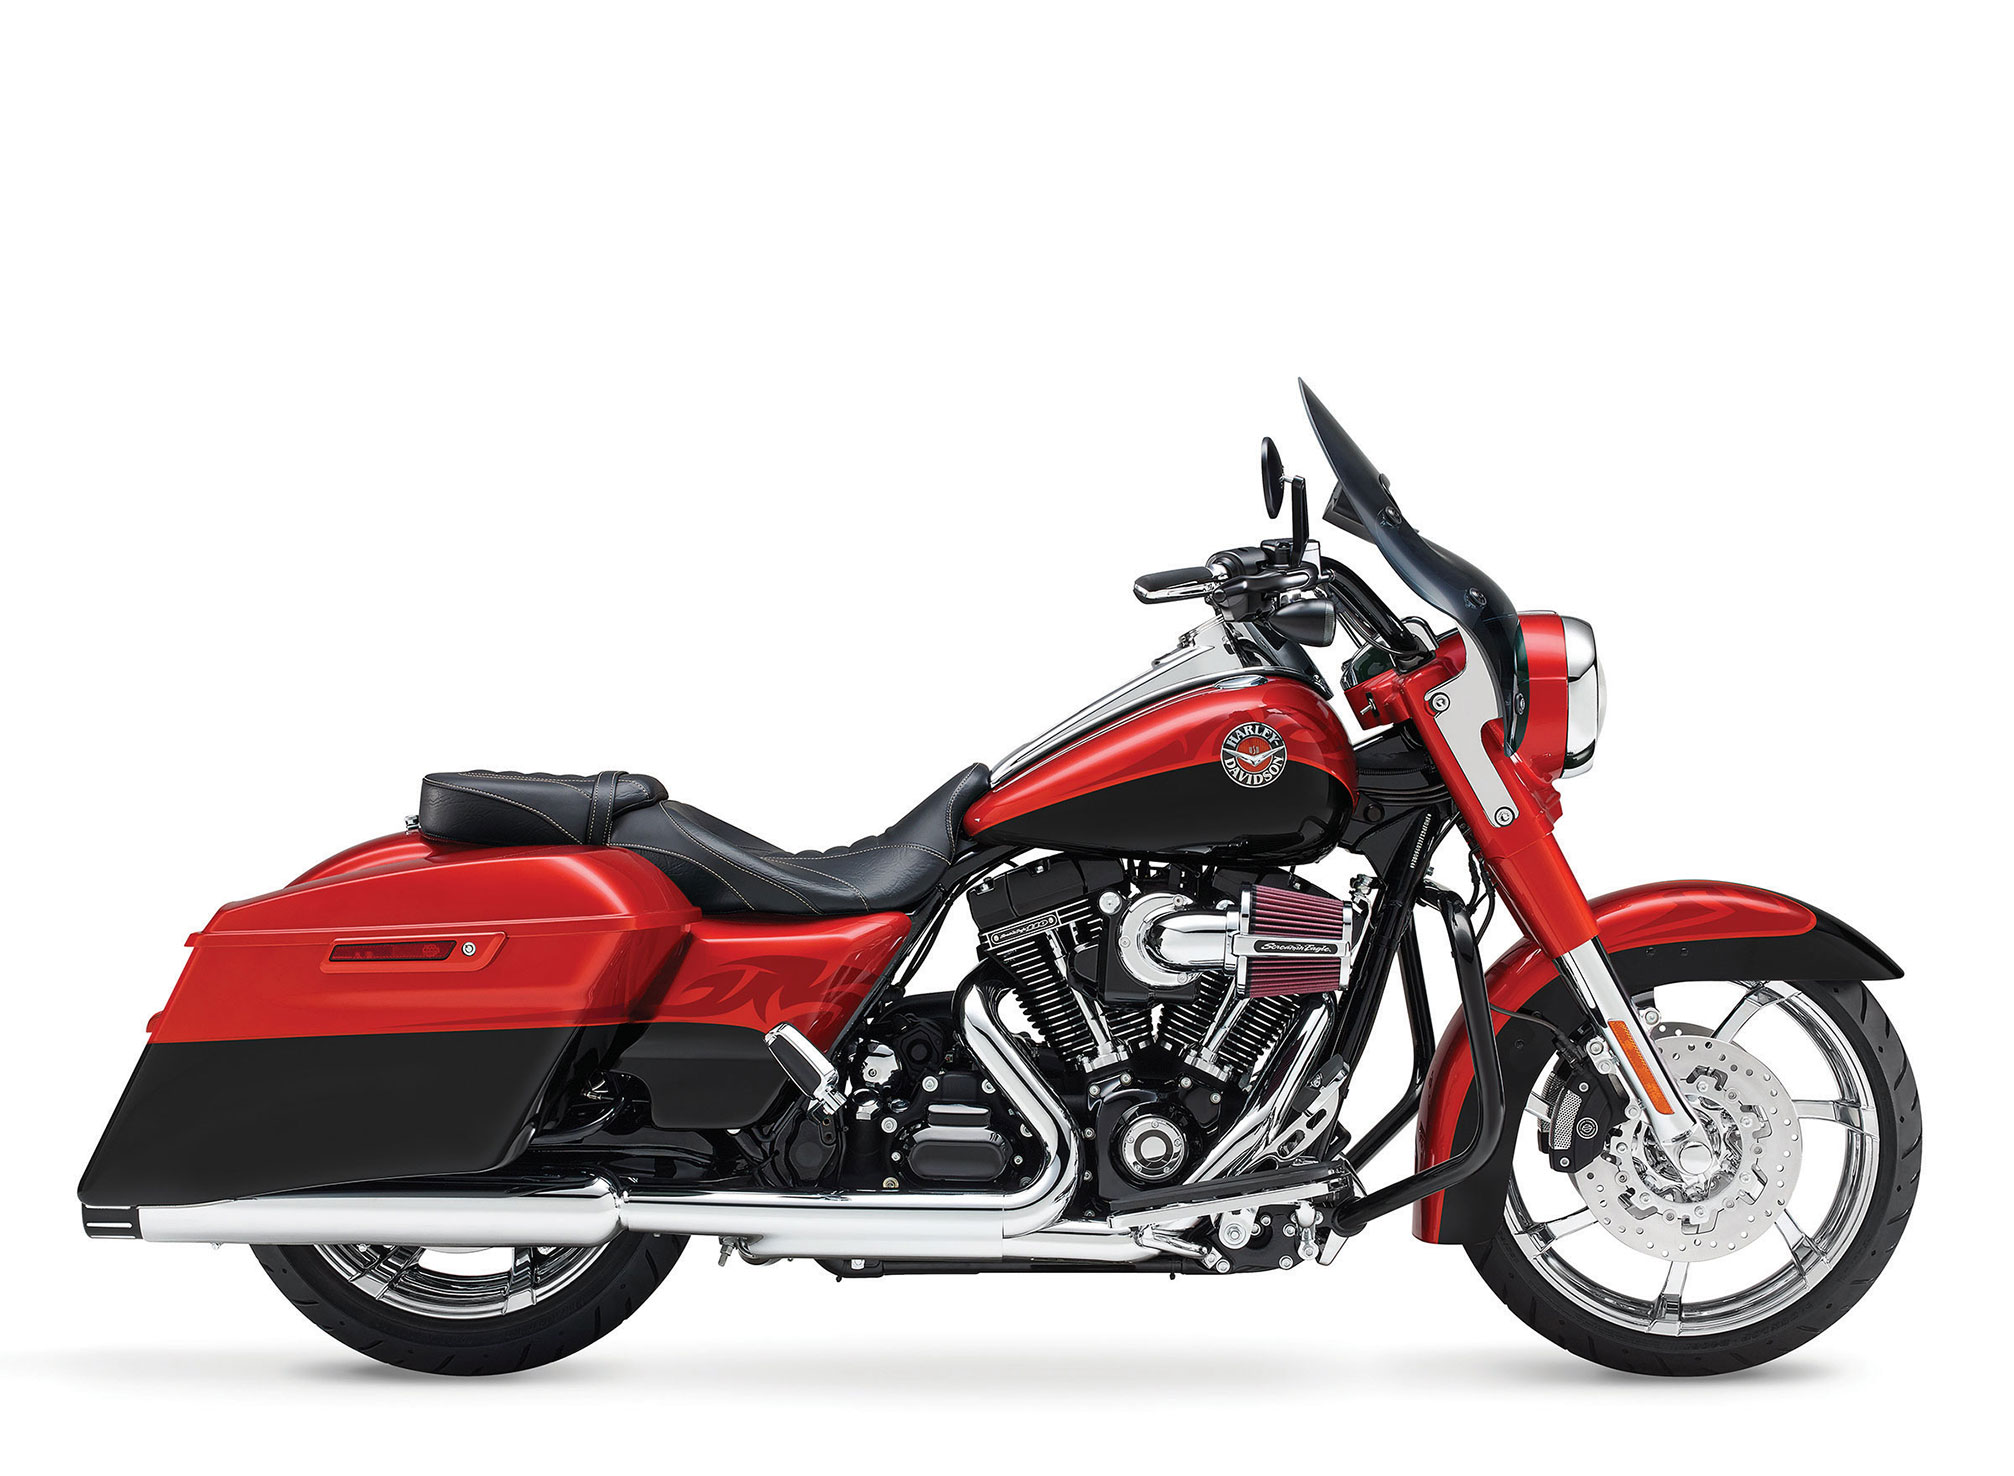 2014 harley davidson flhrse5 cvo road king review. Black Bedroom Furniture Sets. Home Design Ideas